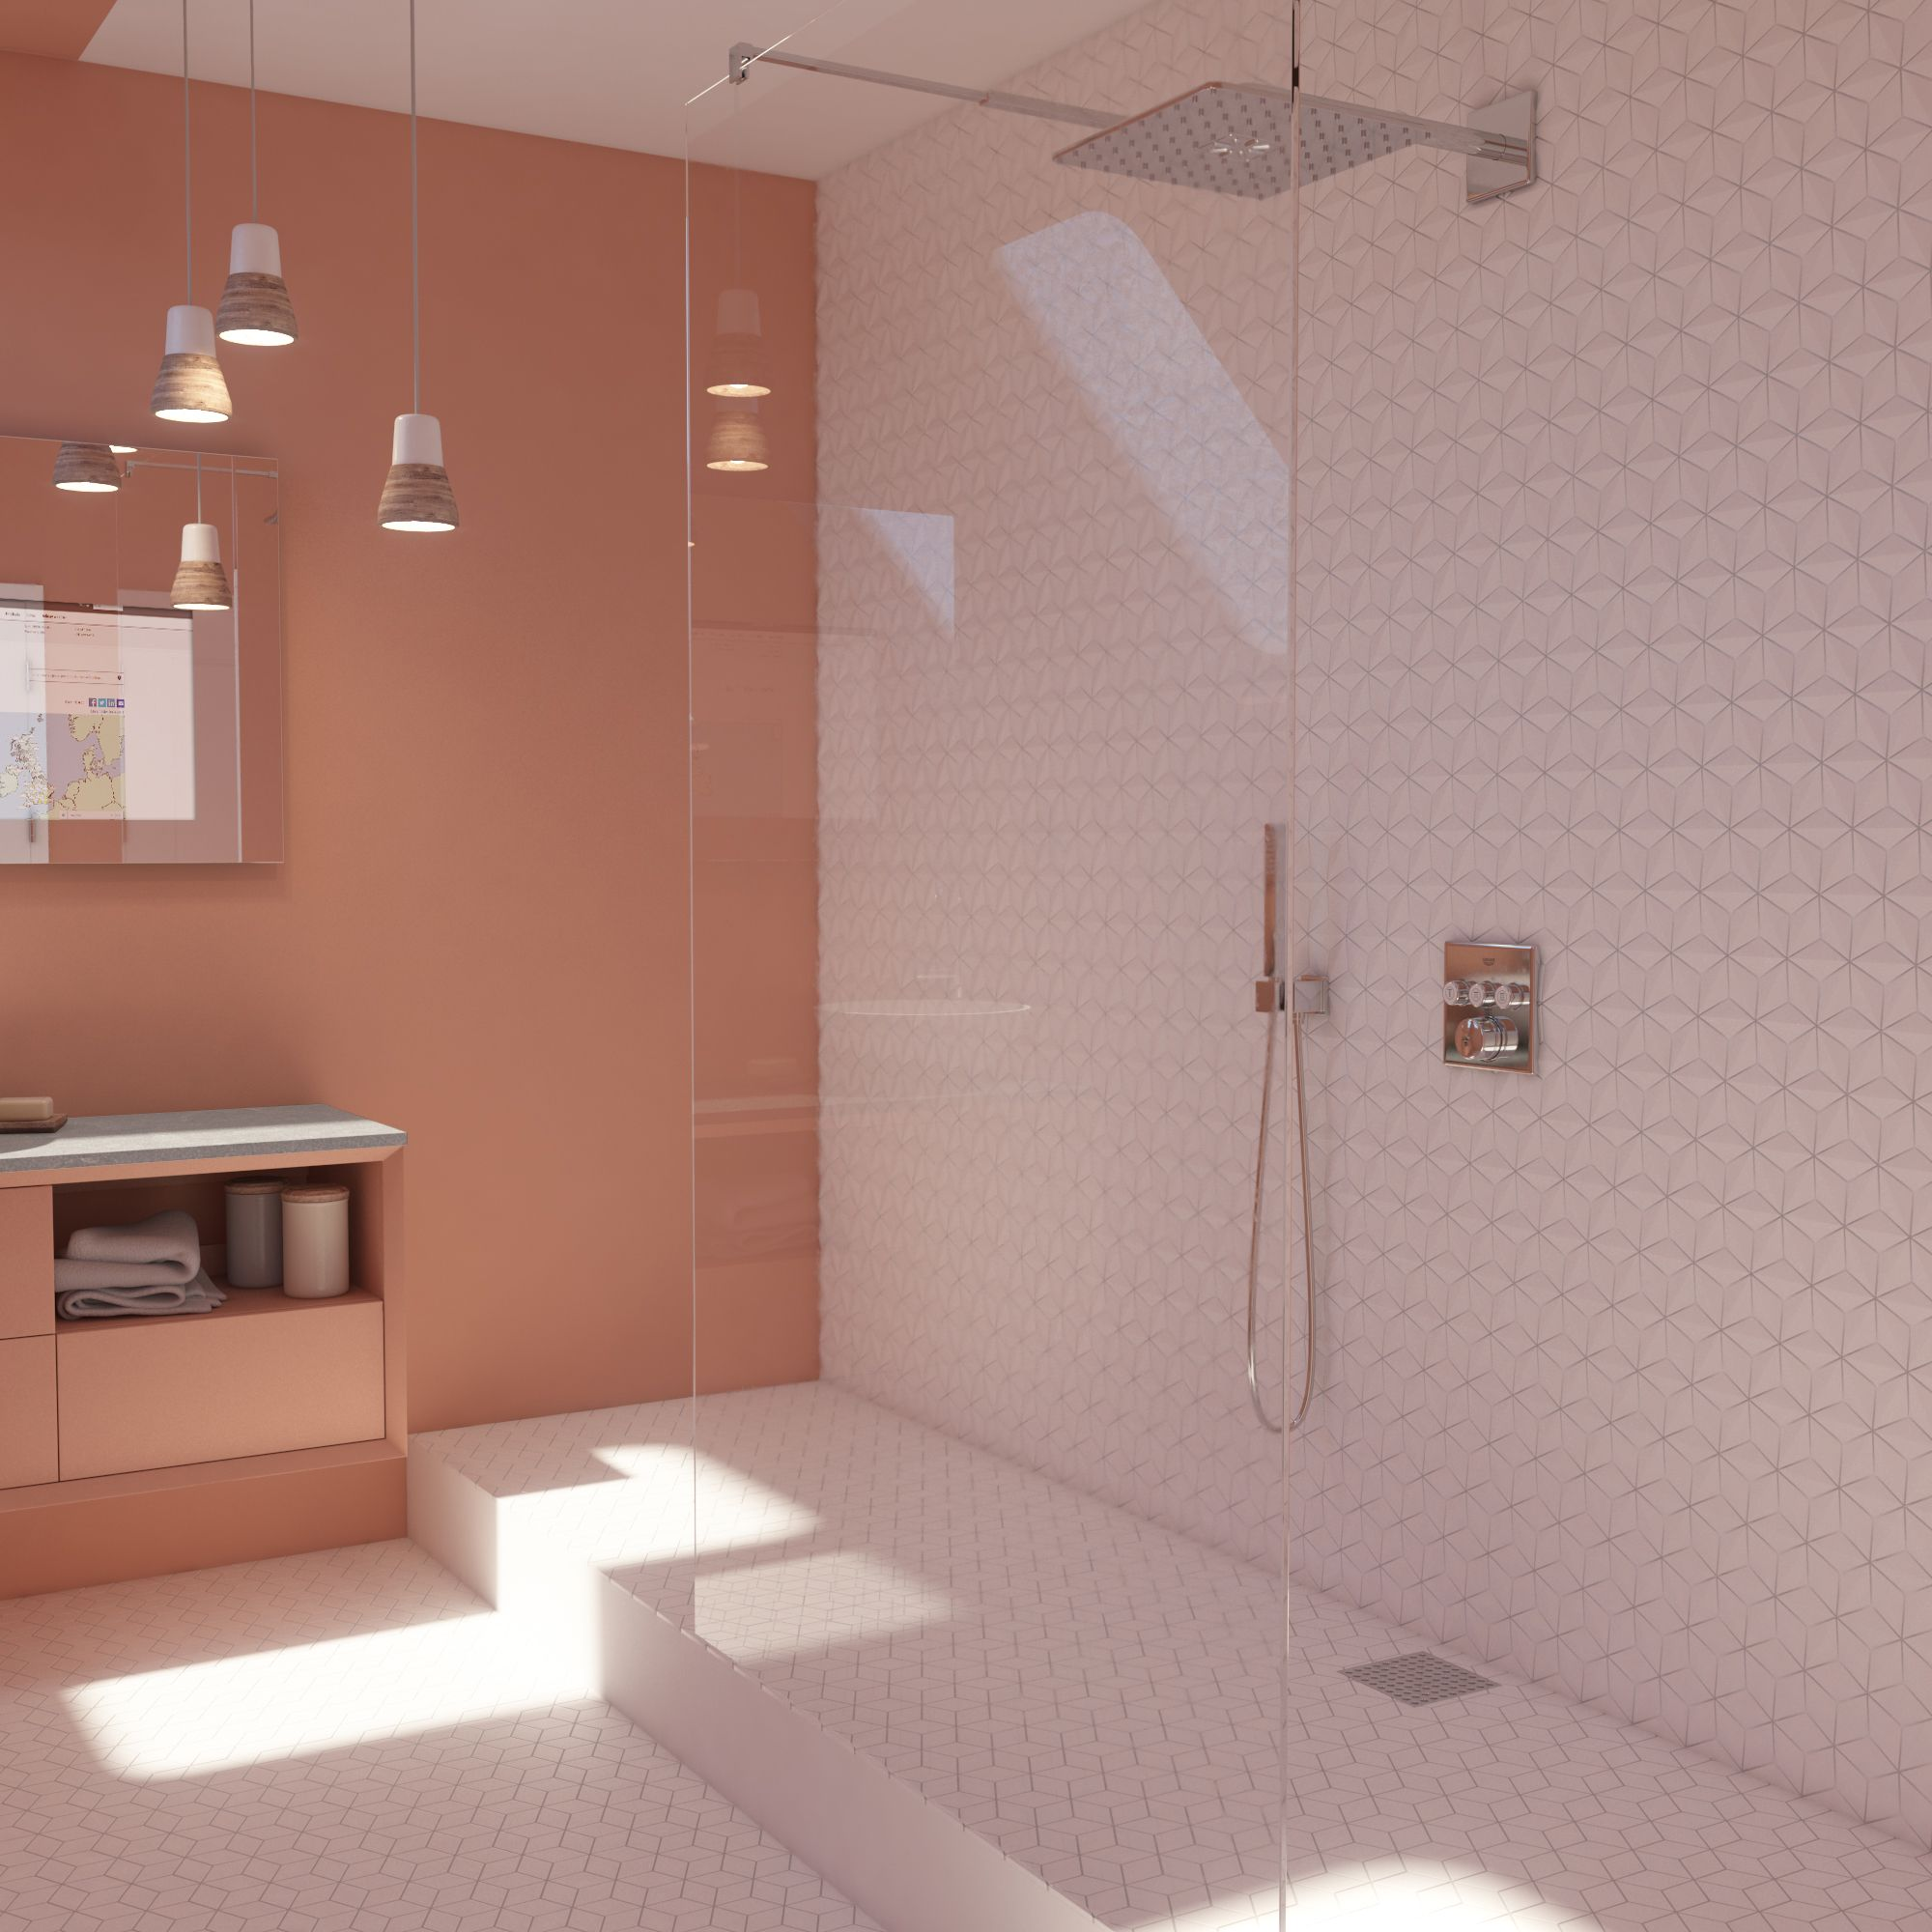 Inspired By The Sweetness Of Sherbet, Our Sherbet Spaceship Room